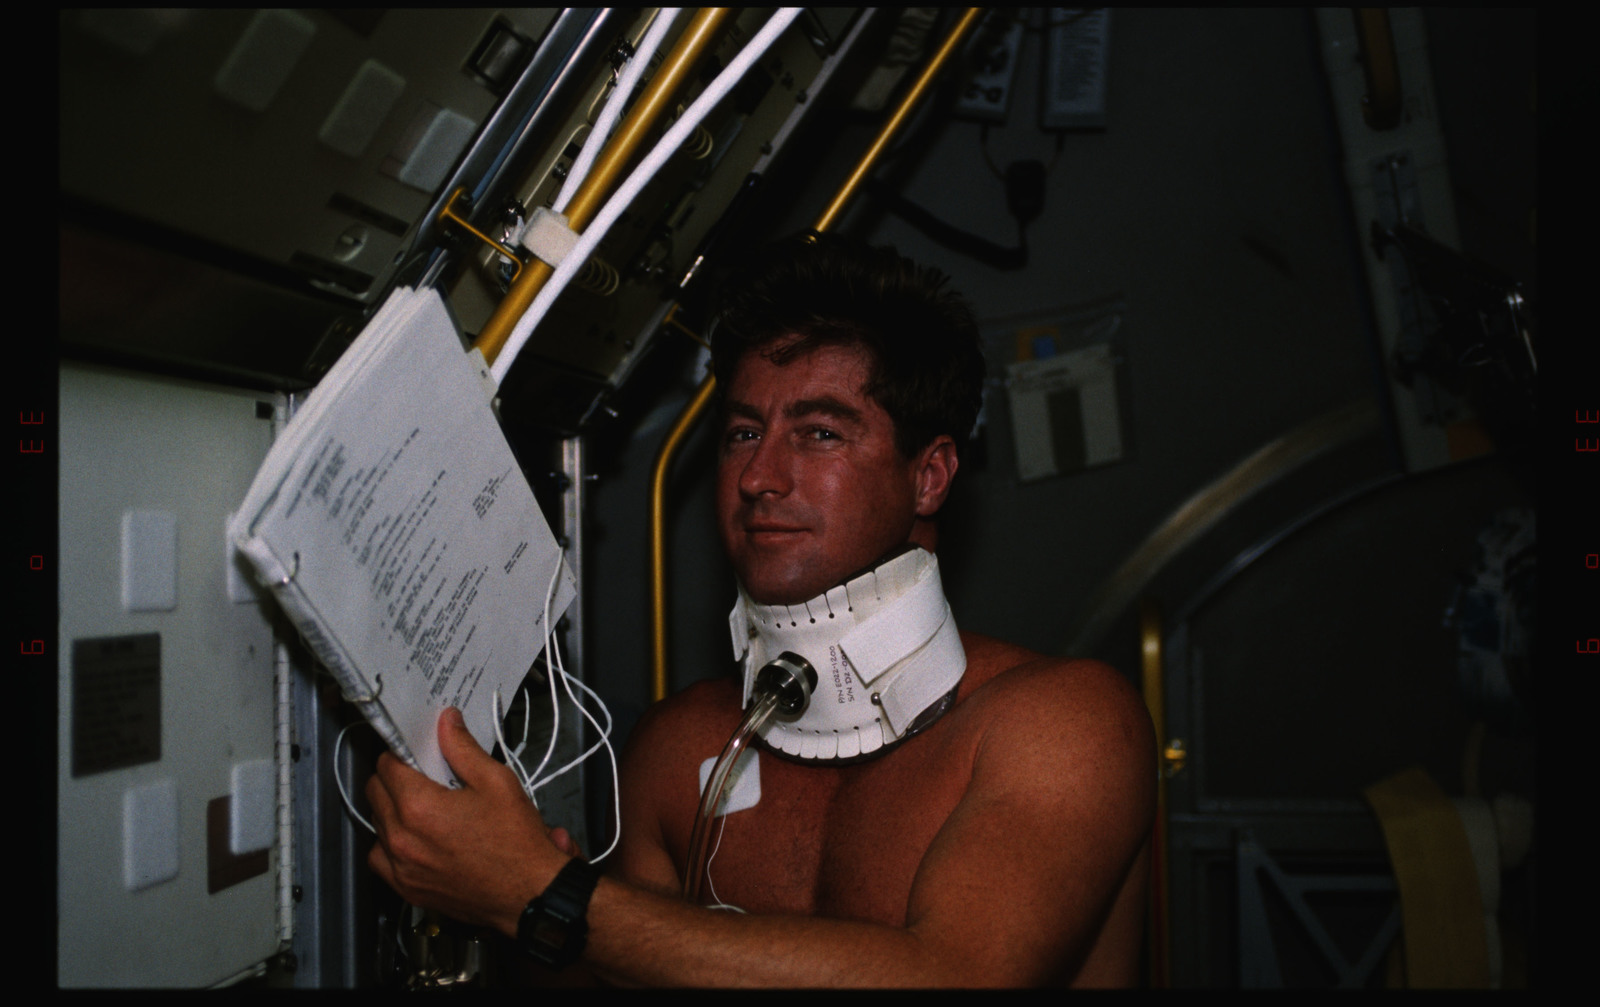 STS055-233-019 - STS-055 - Crewmember and Life Sciences Experiment in the D-2 Spacelab.